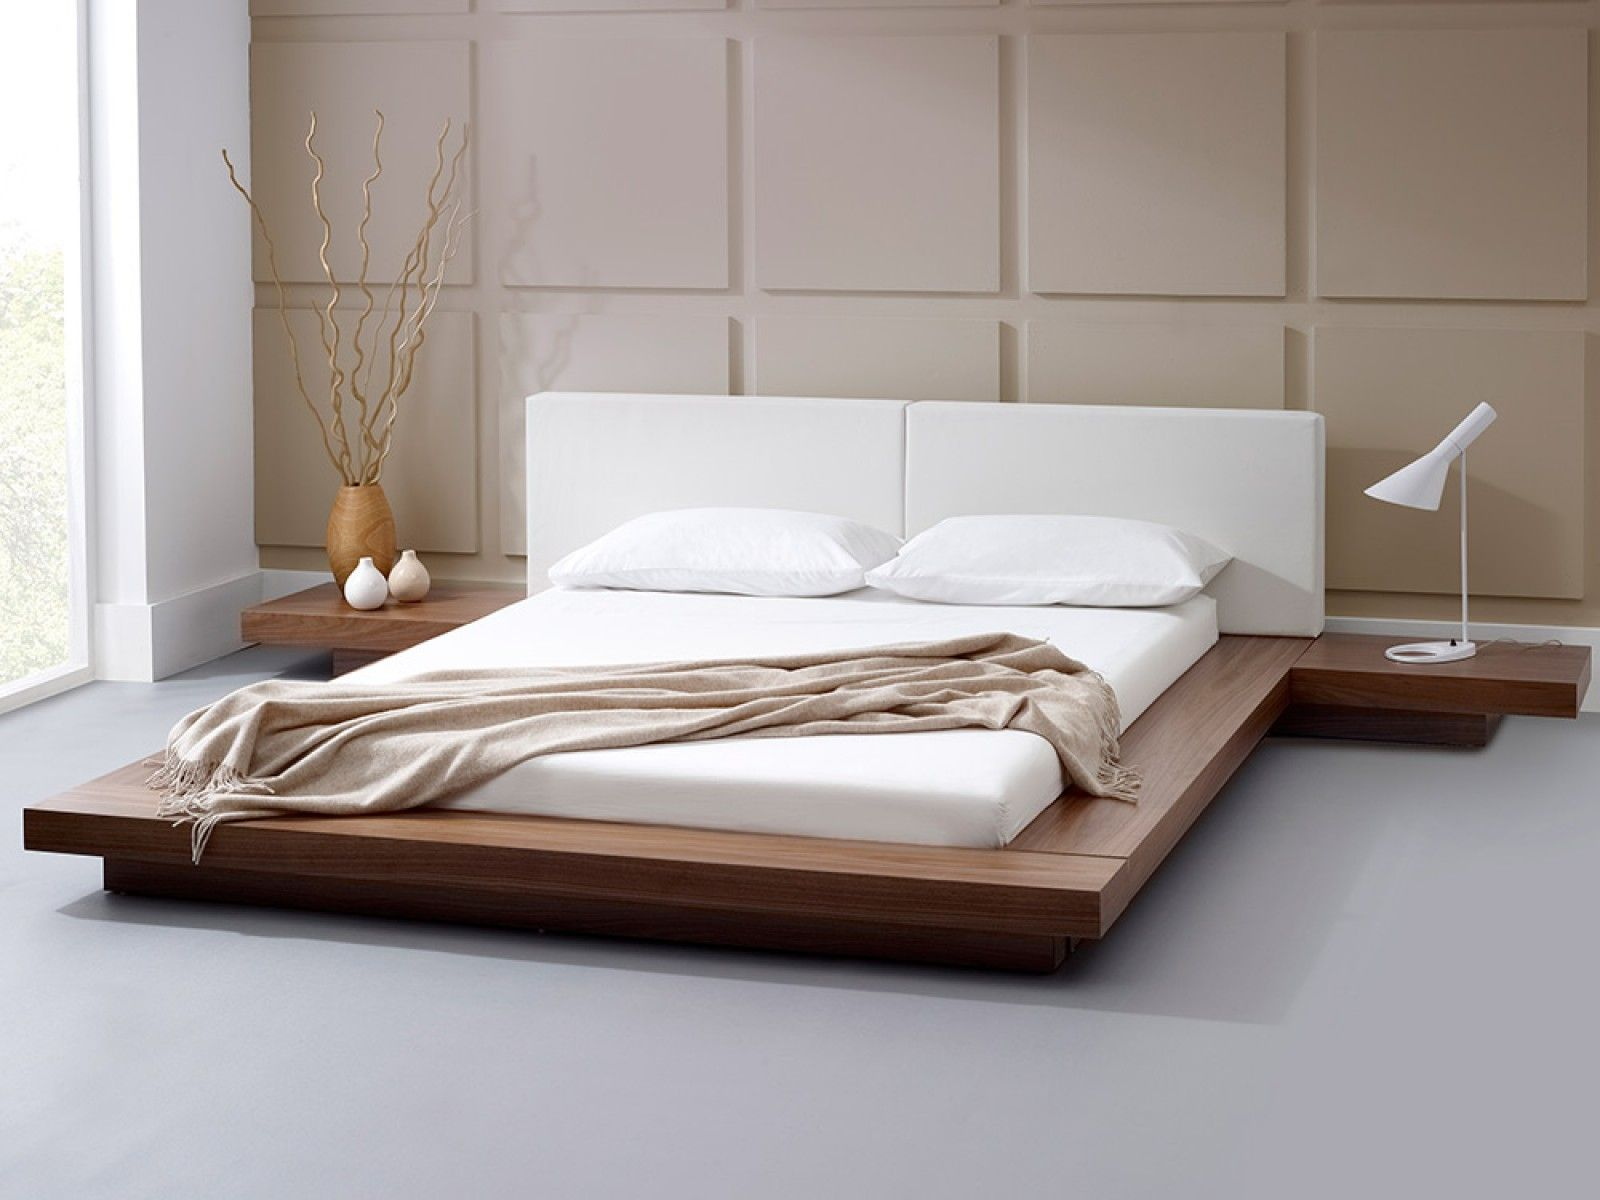 Harmonia Natural Walnut Bed Furniture Design Living Room Bed